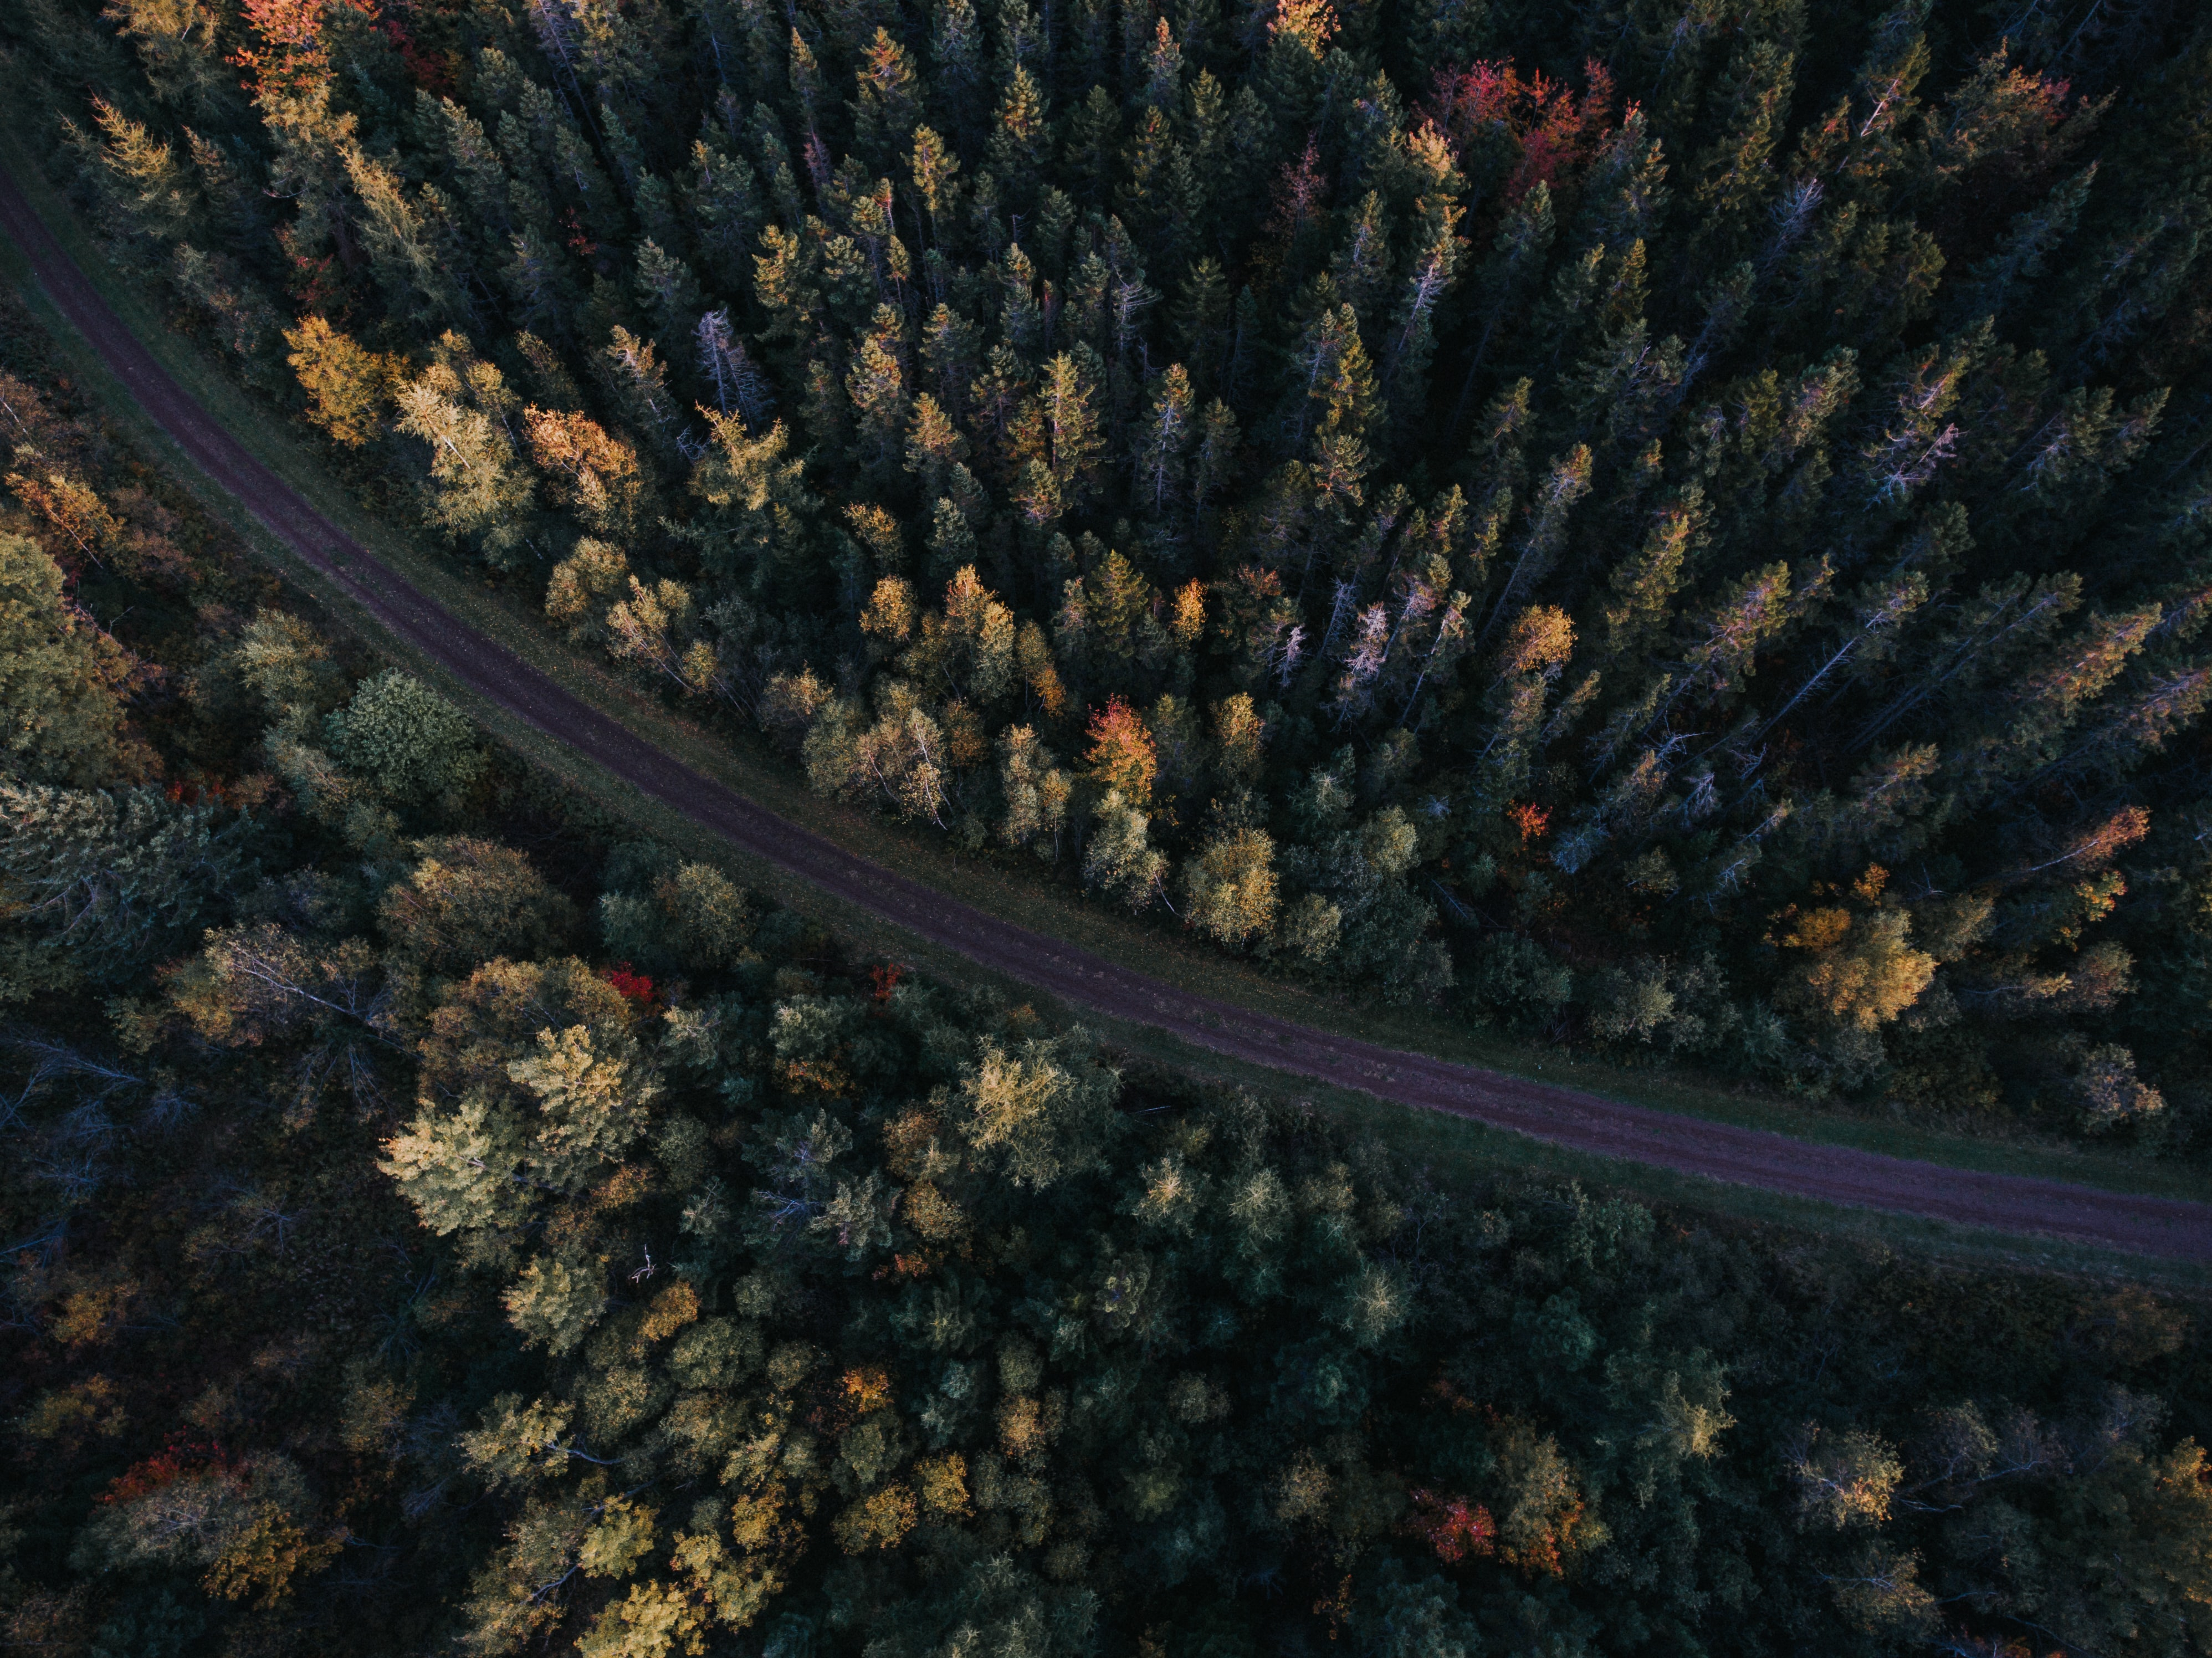 A drone shot of a colorful forest at the sides of a narrow road